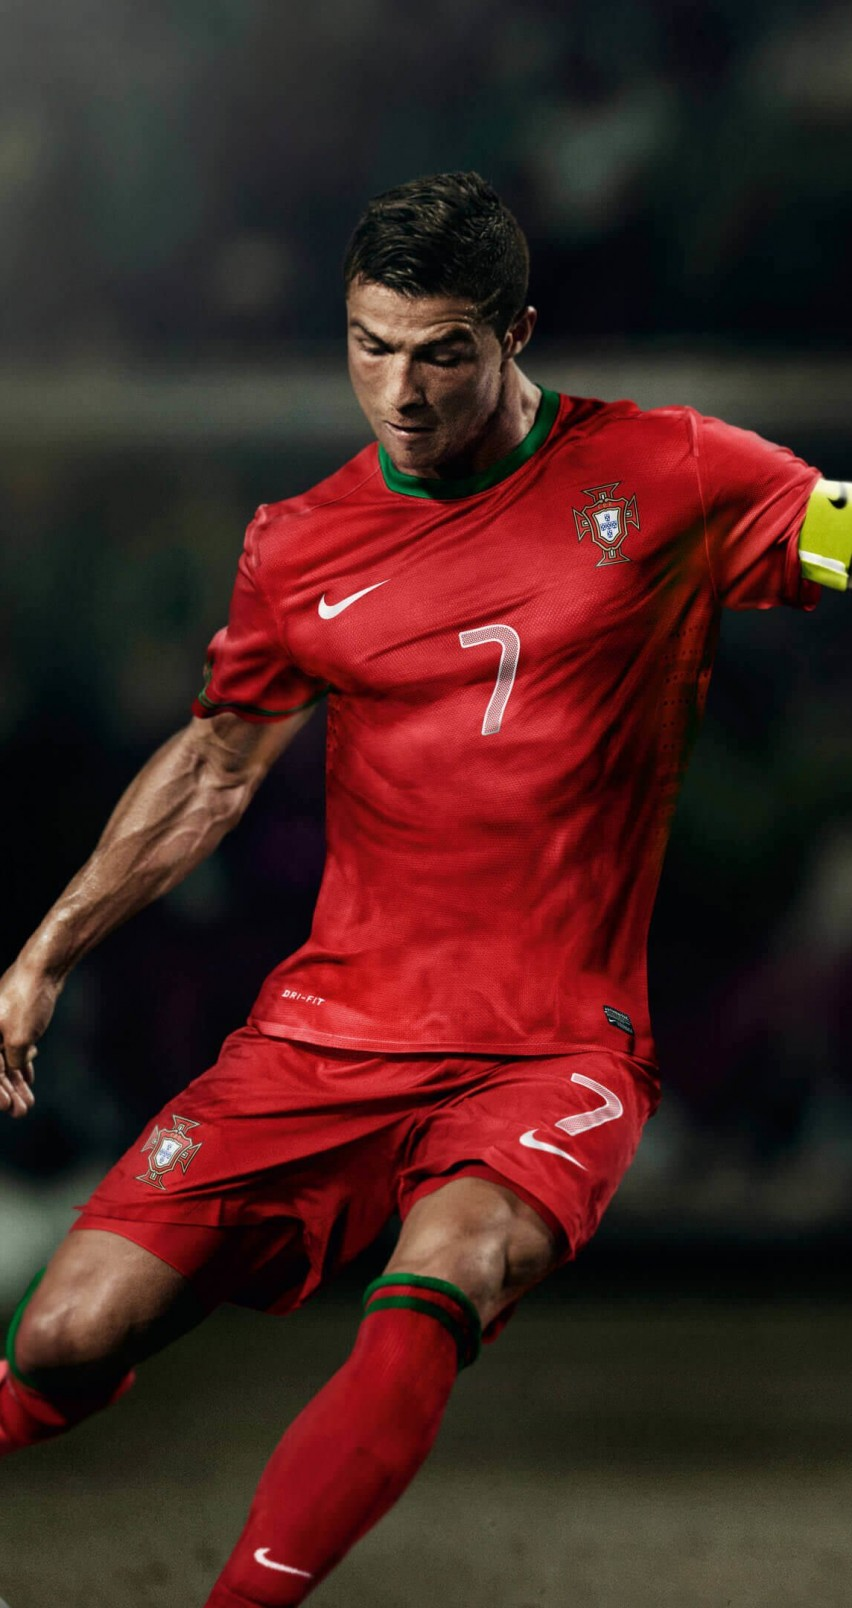 Cristiano Ronaldo In Portugal Jersey Wallpaper for Apple iPhone 6 / 6s